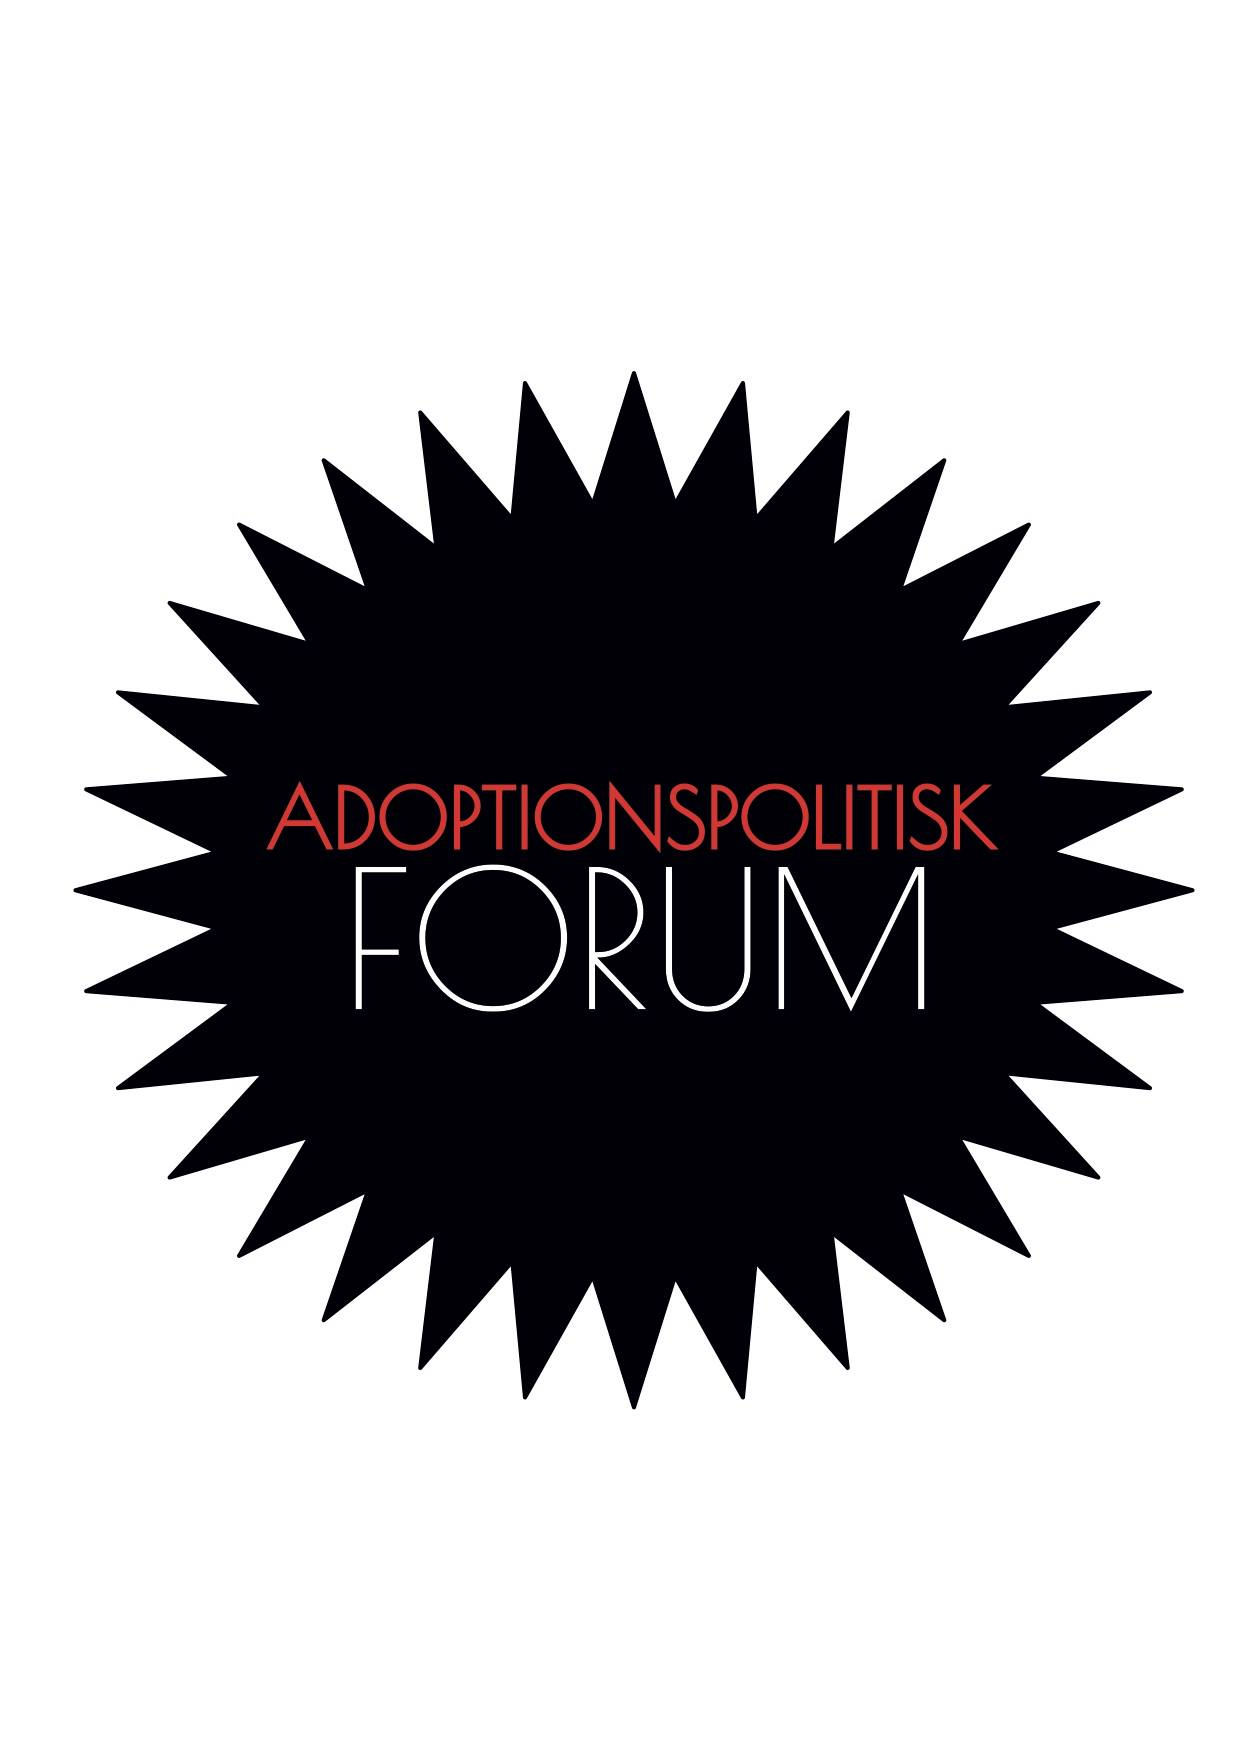 Music for Adoptionspolitisk Forum